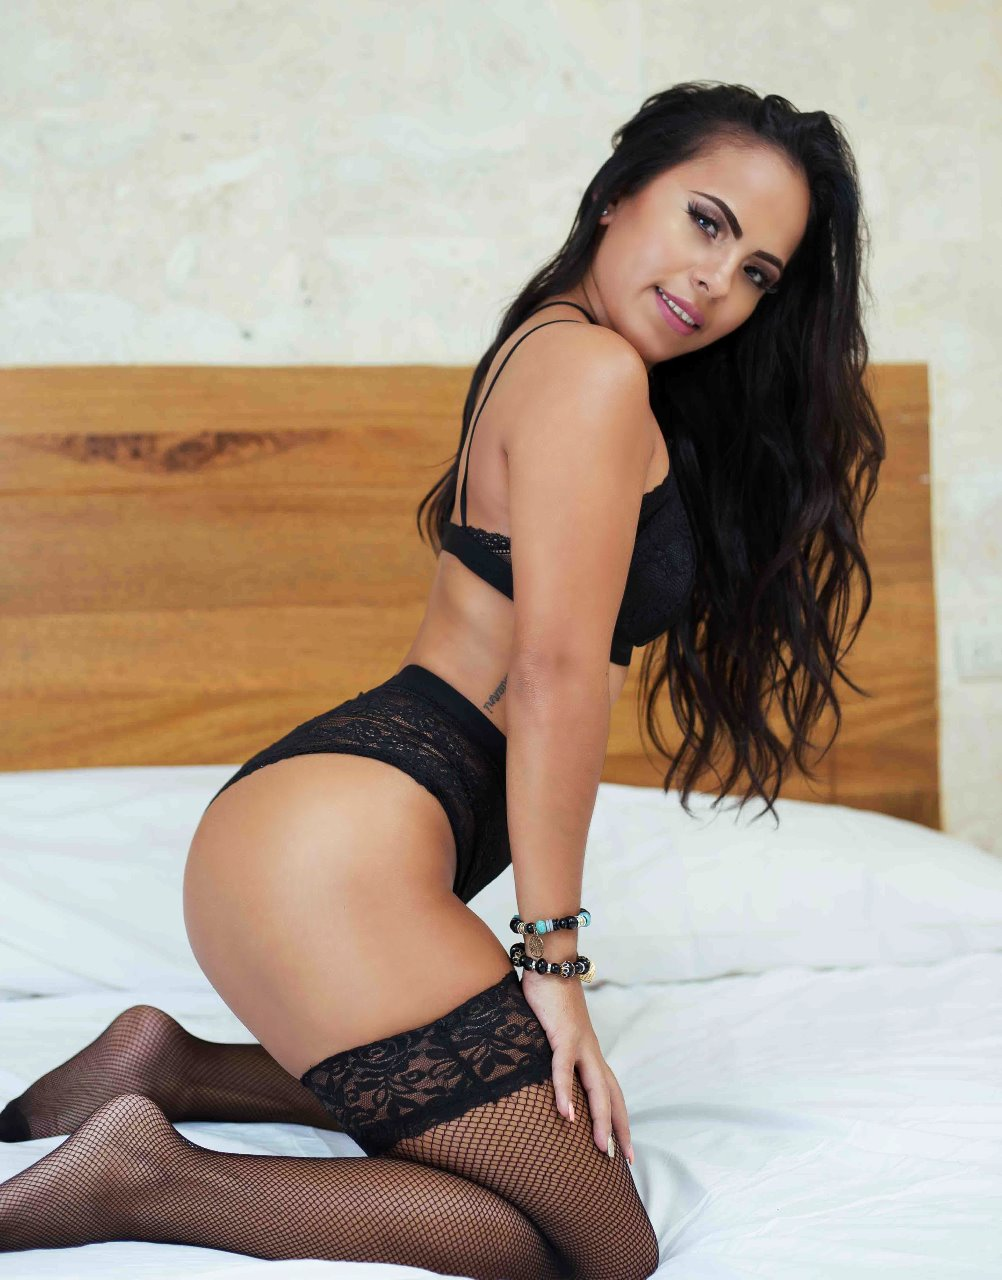 Punta Cana Escort - Enjoy best vacation with our Hostess